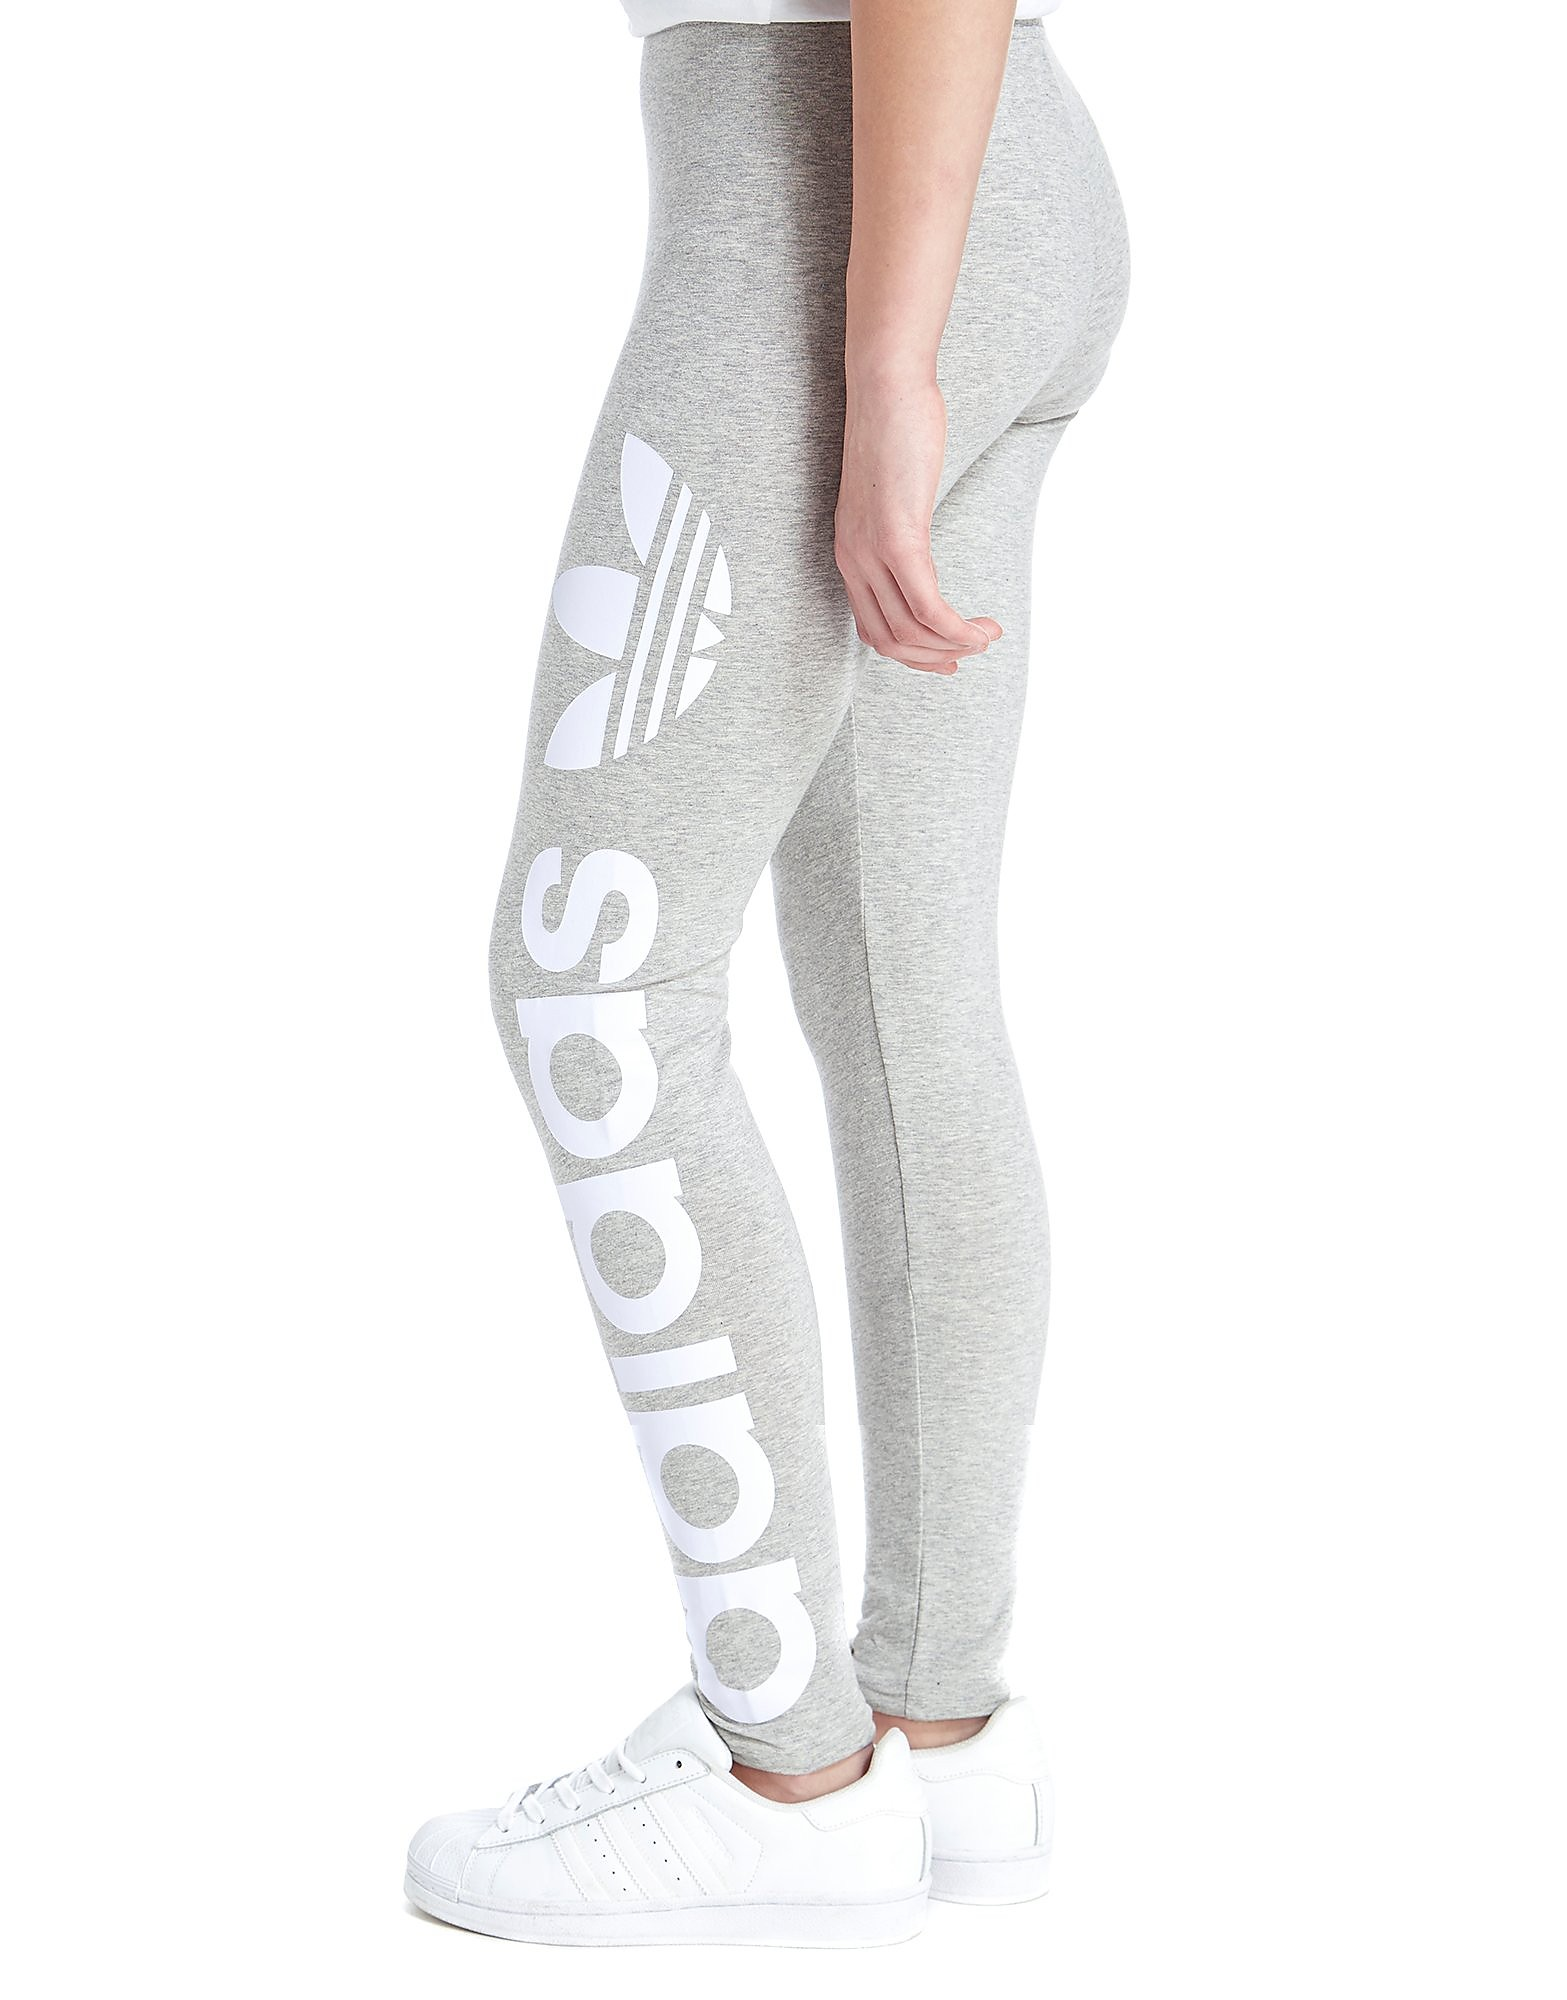 adidas Originals Legging adidas Orginals junior filles